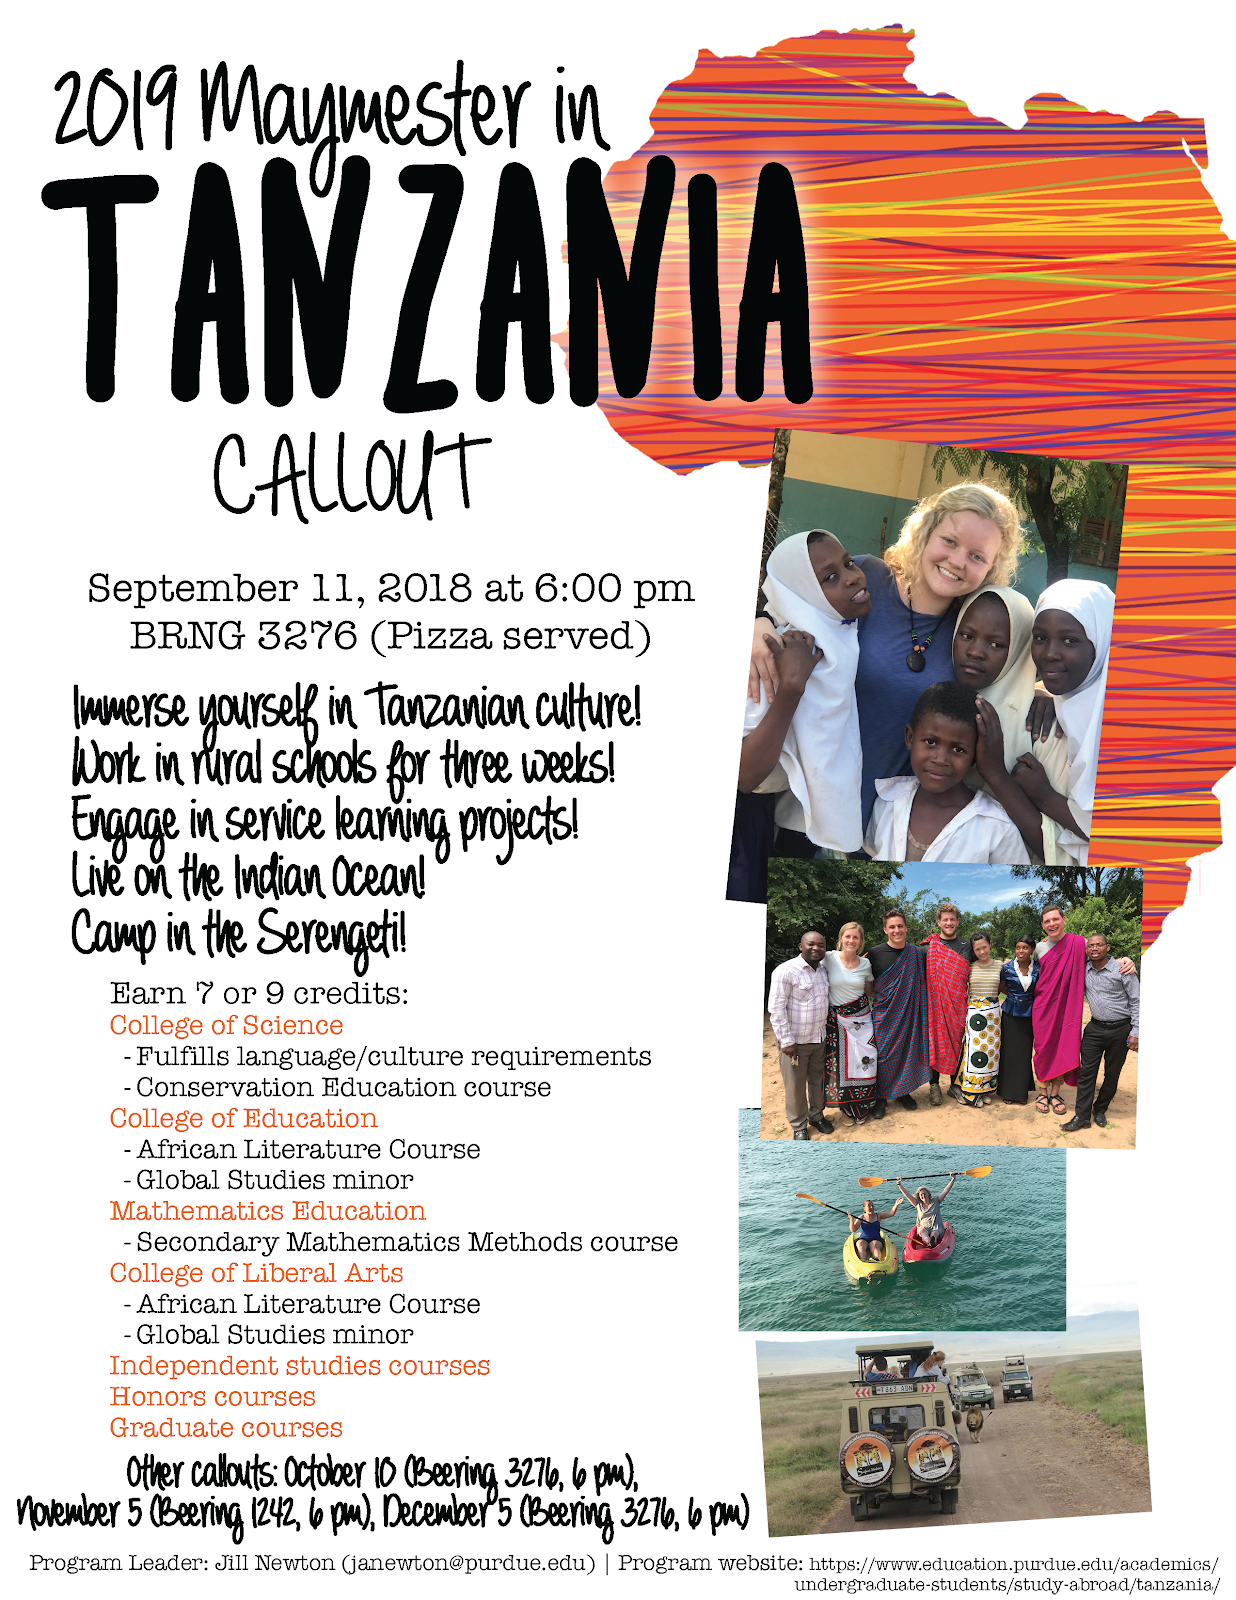 Tanzania Study Abroad Maymester 2019 | Purdue IE Undergrad News and